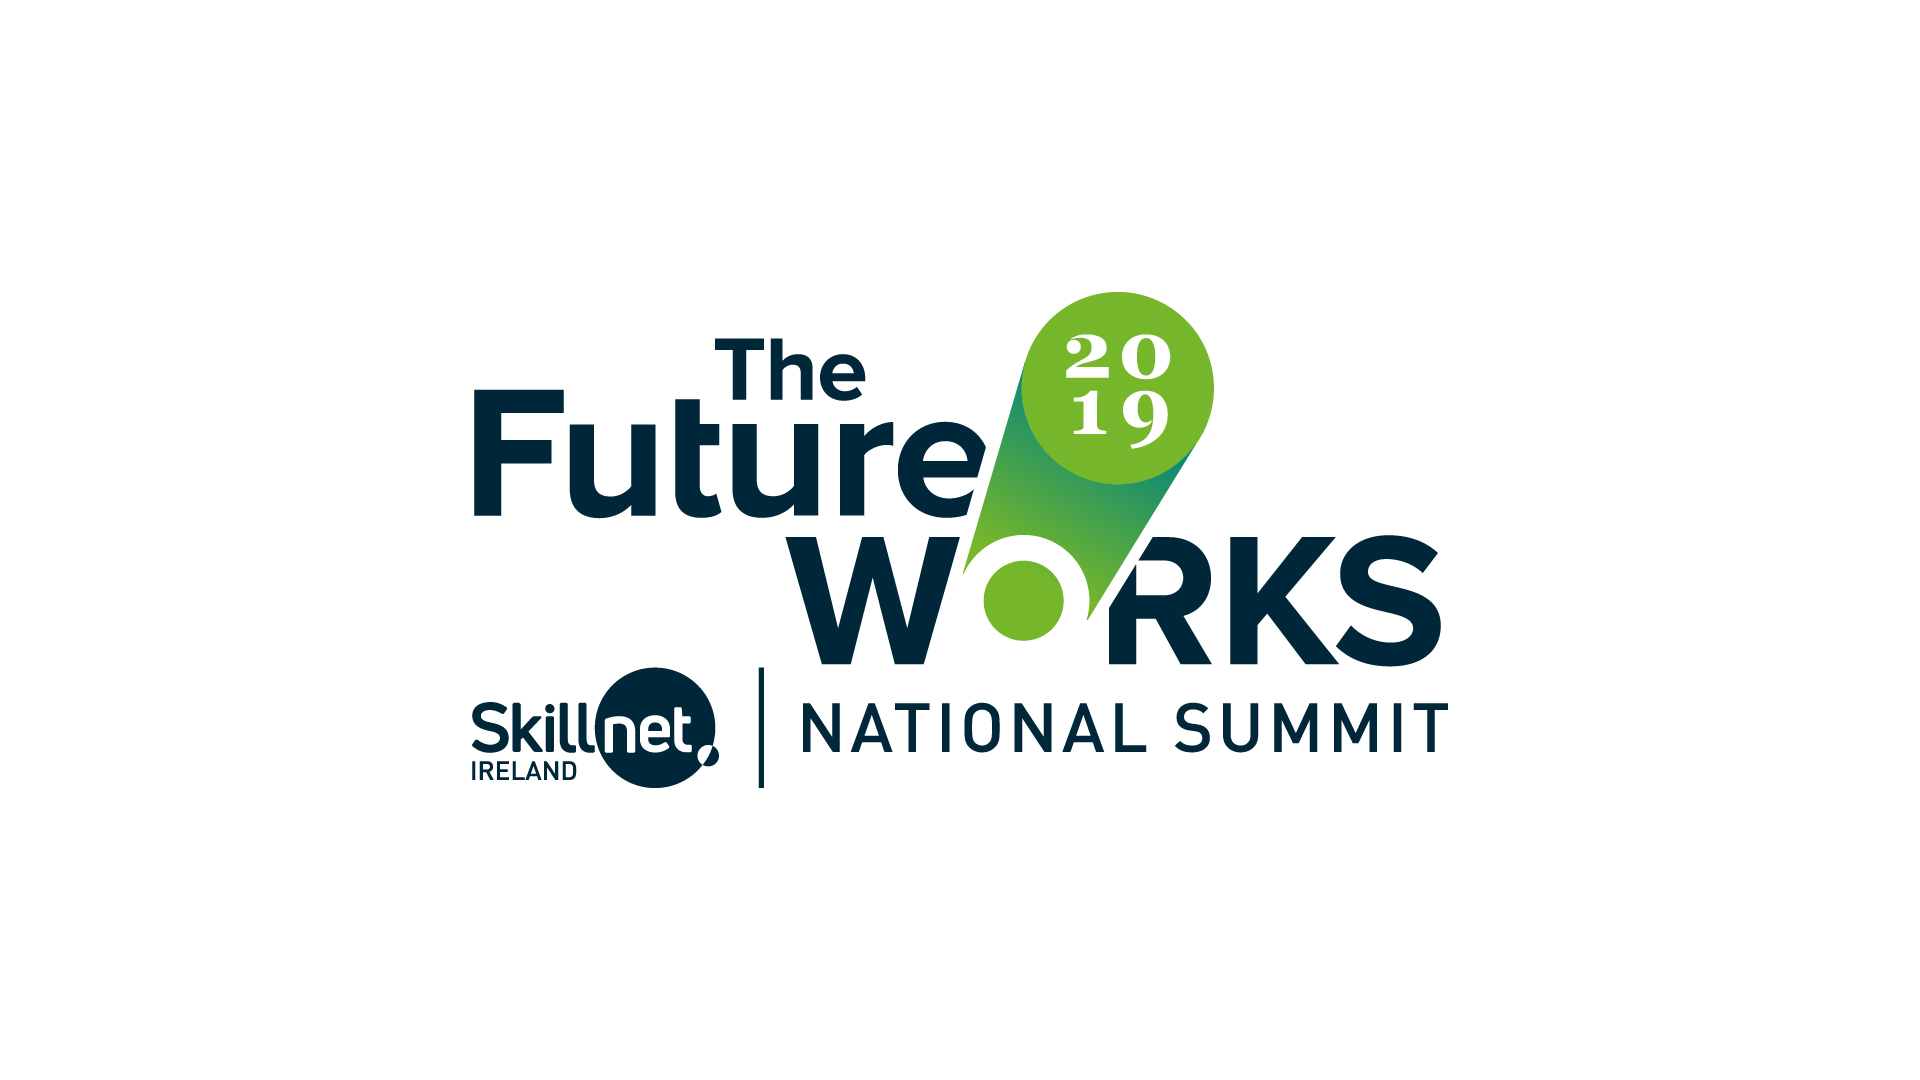 Cover image: The Future Works